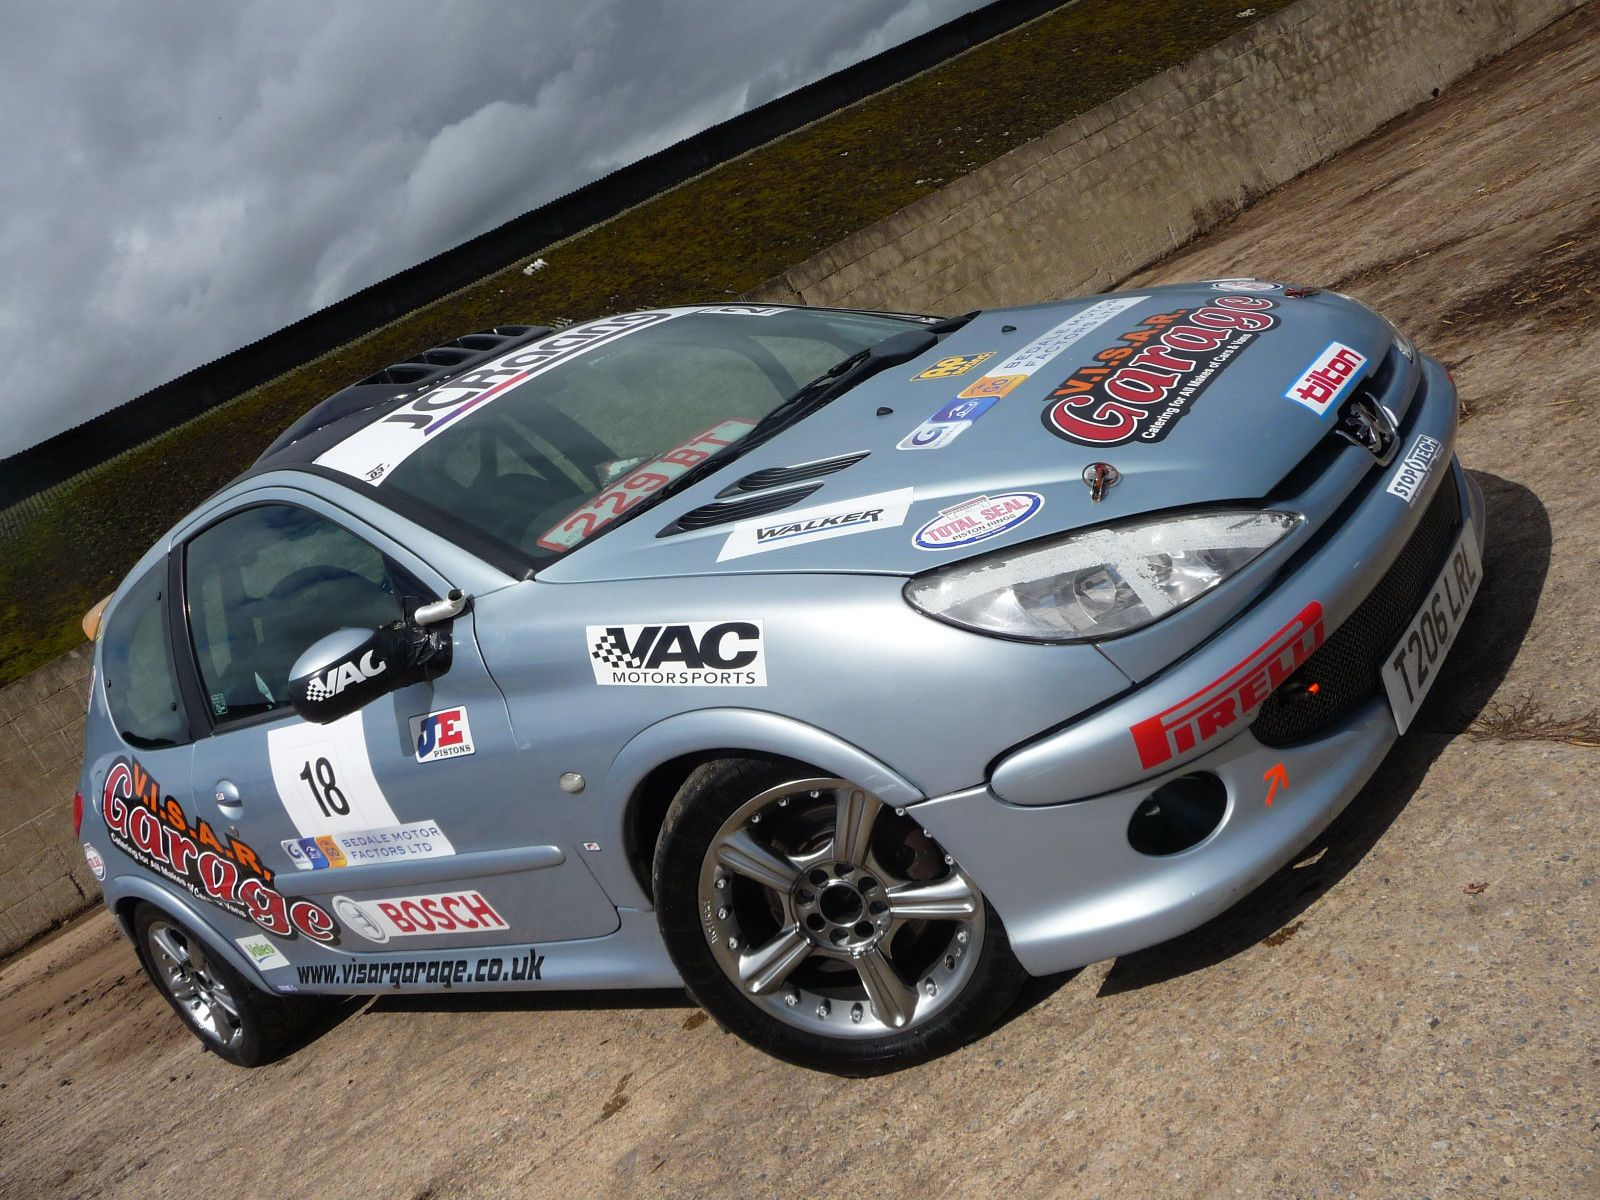 Ebay Peugeot 206 2 0 Gti Track Car Runs And Drives Great